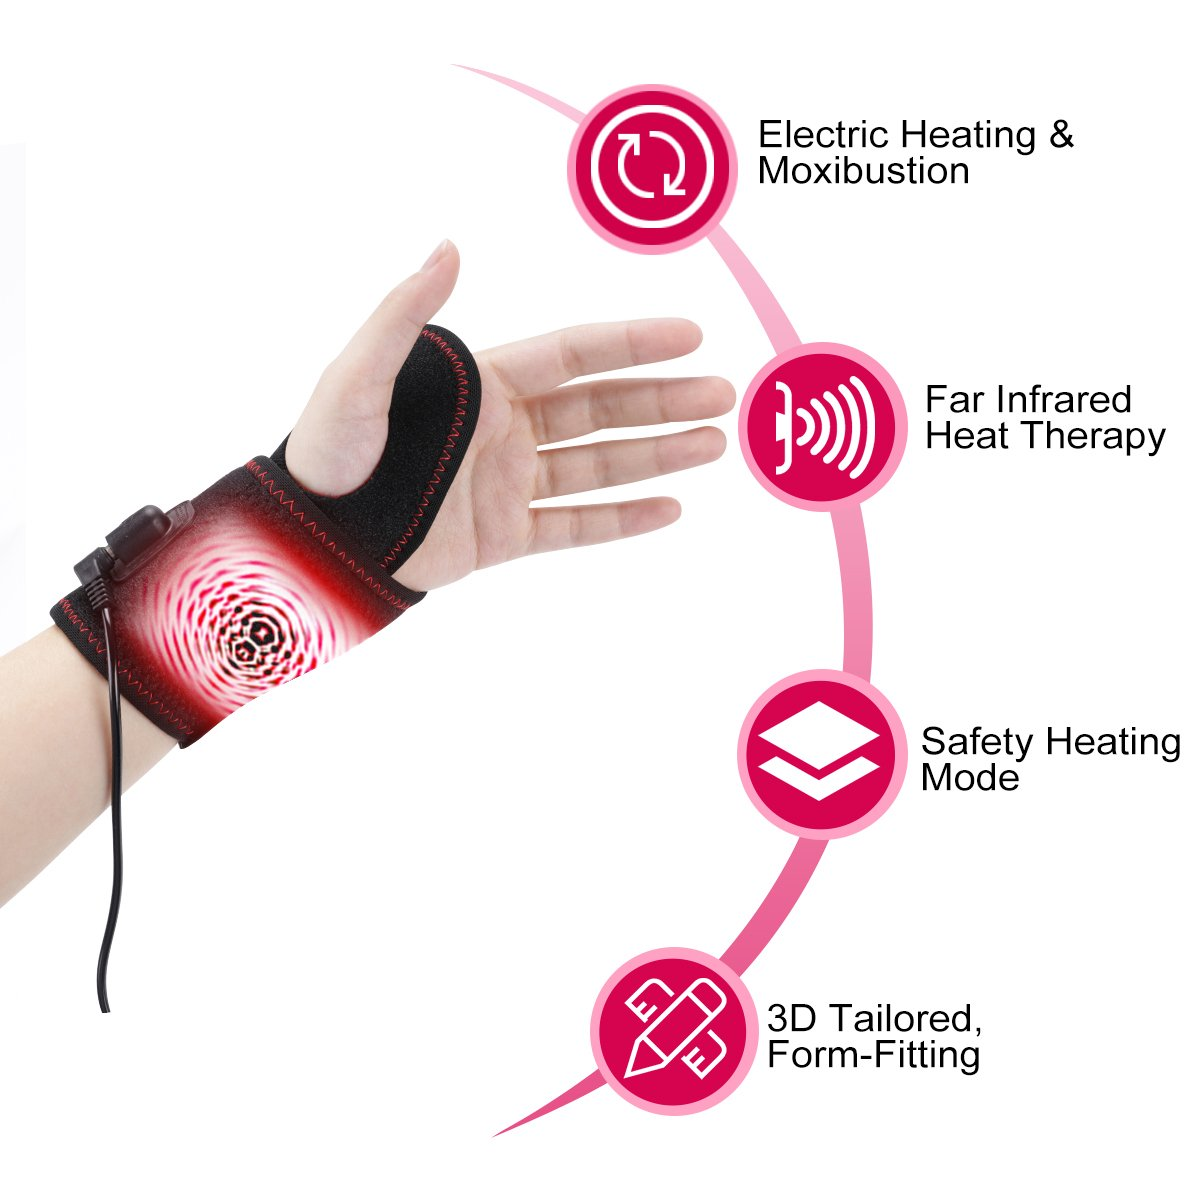 Heated Wrist Brace Heating Wrist Wrap by TechLove with Moxa Bag for Men and Women Suffer Wrist Injury, Pain, Carpal Tunnel, Arthritis and Tendonitis (Black)